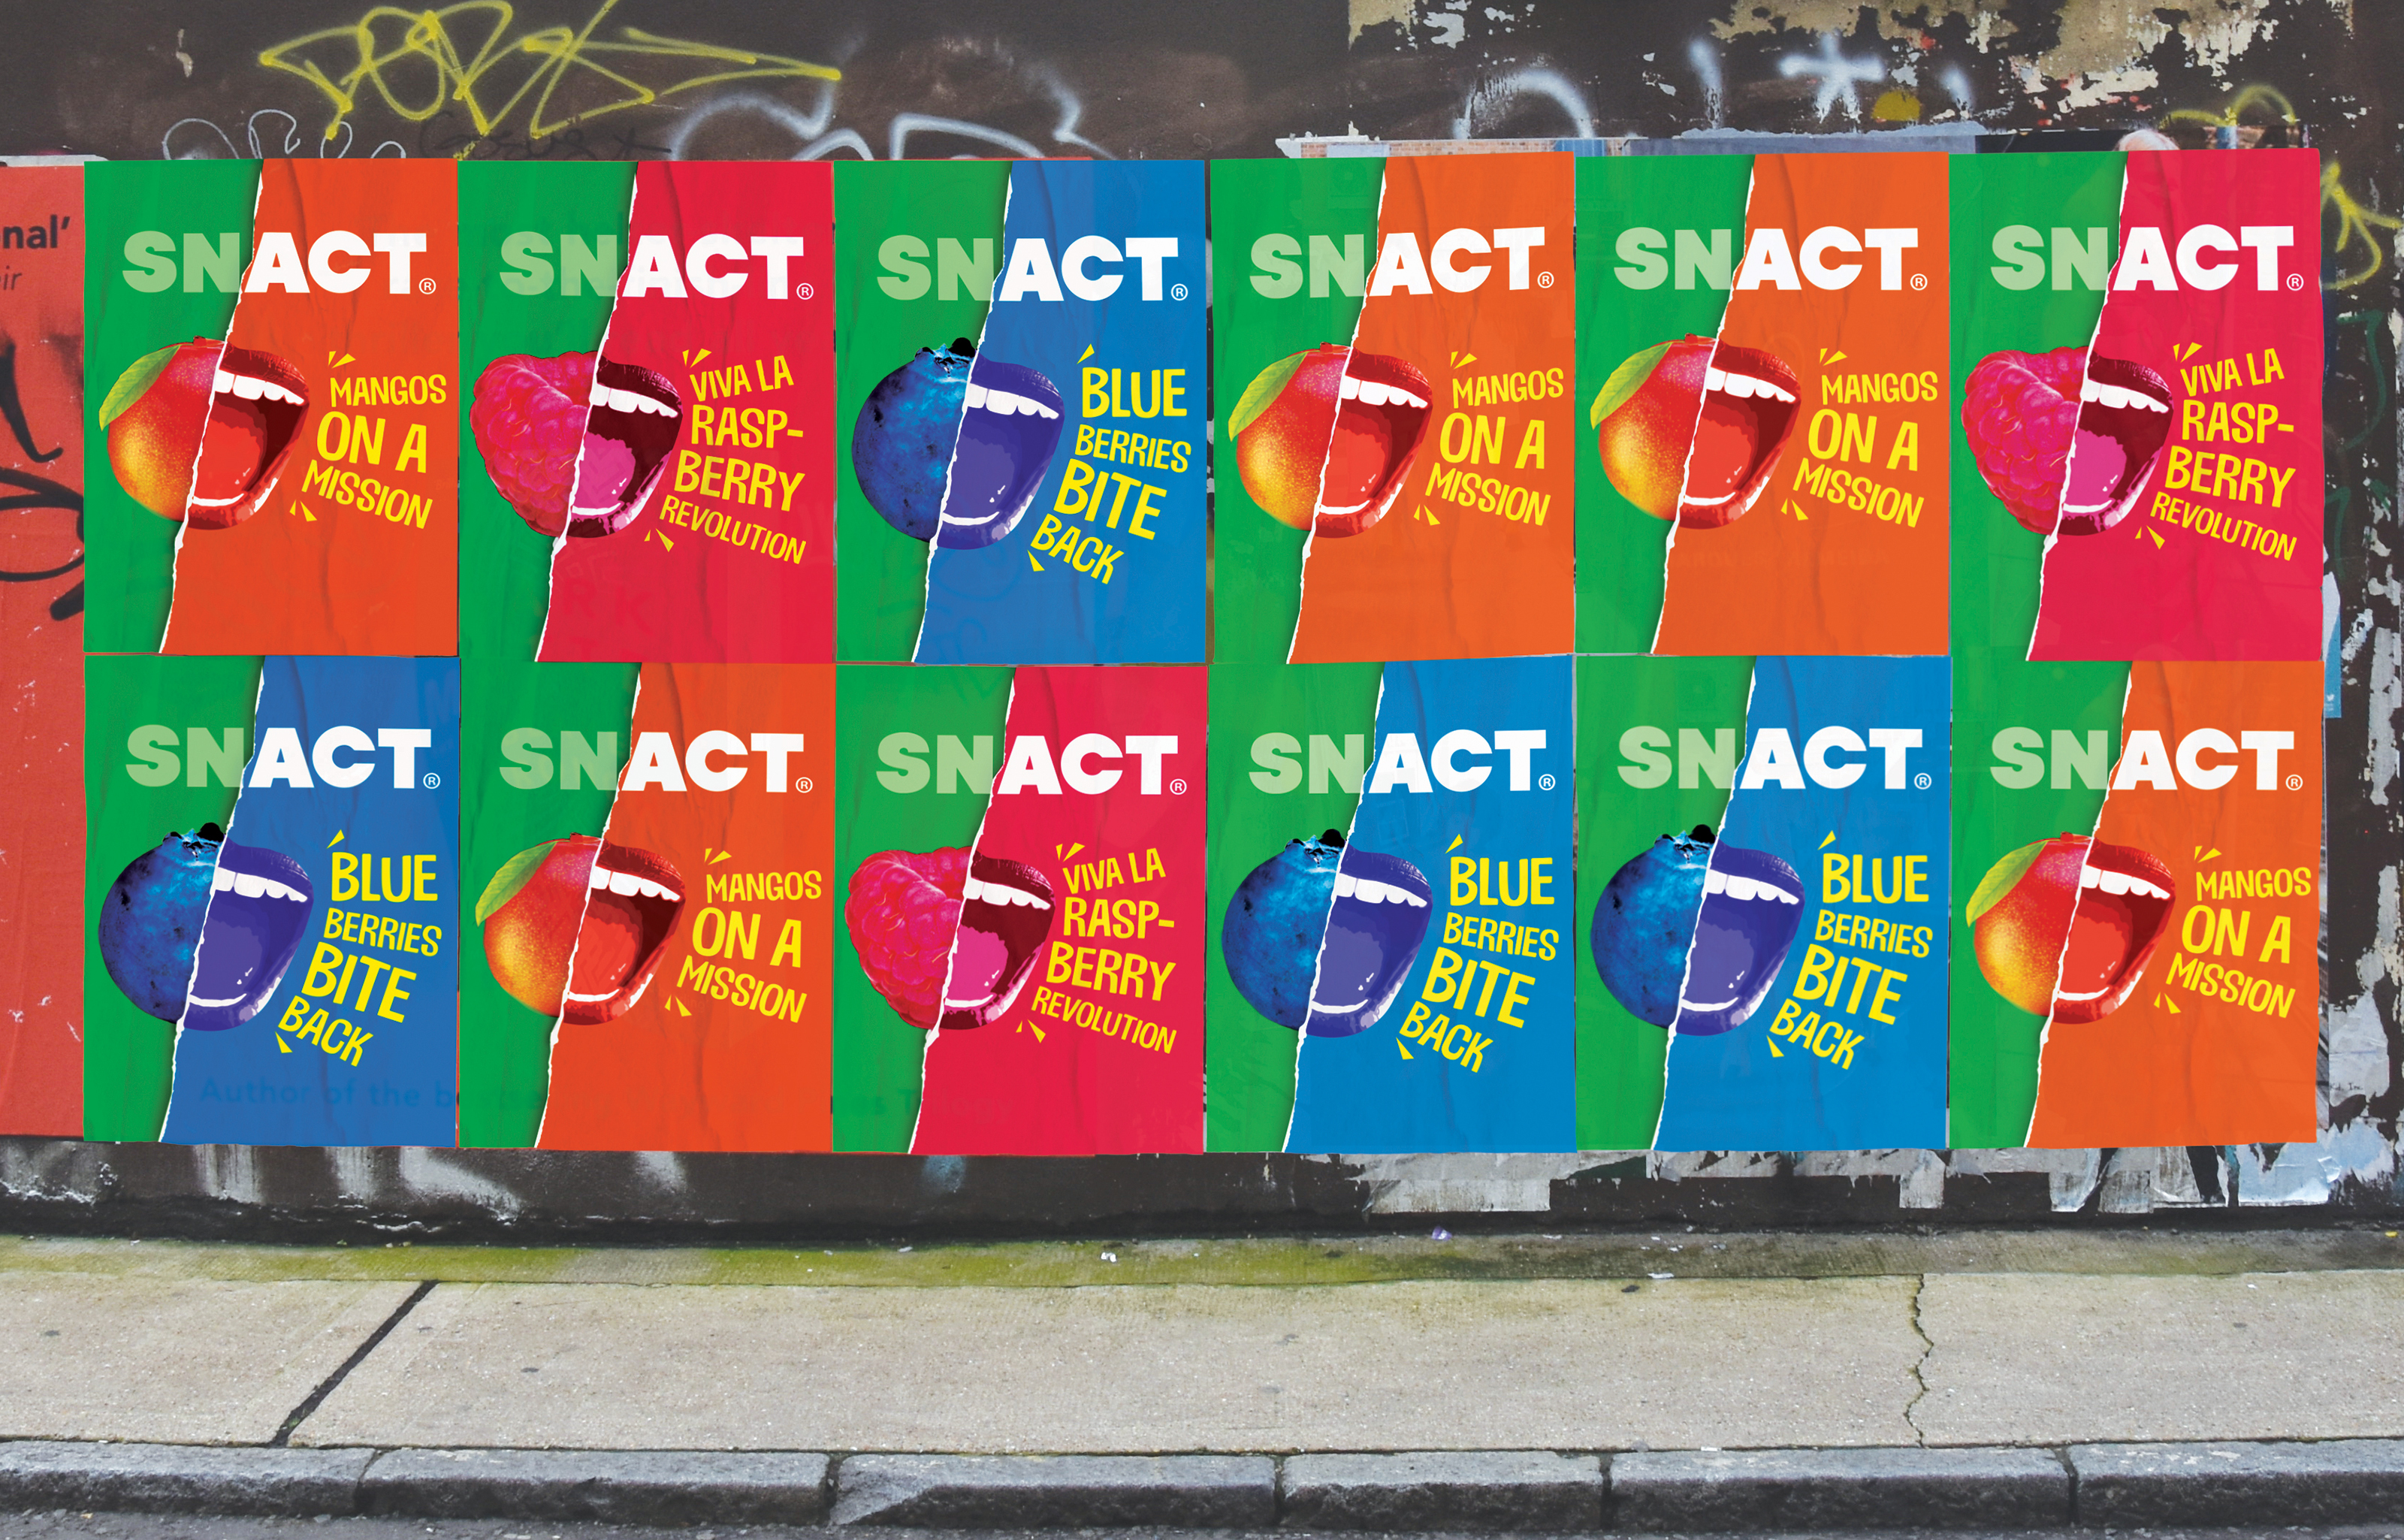 Snact Poster Wall